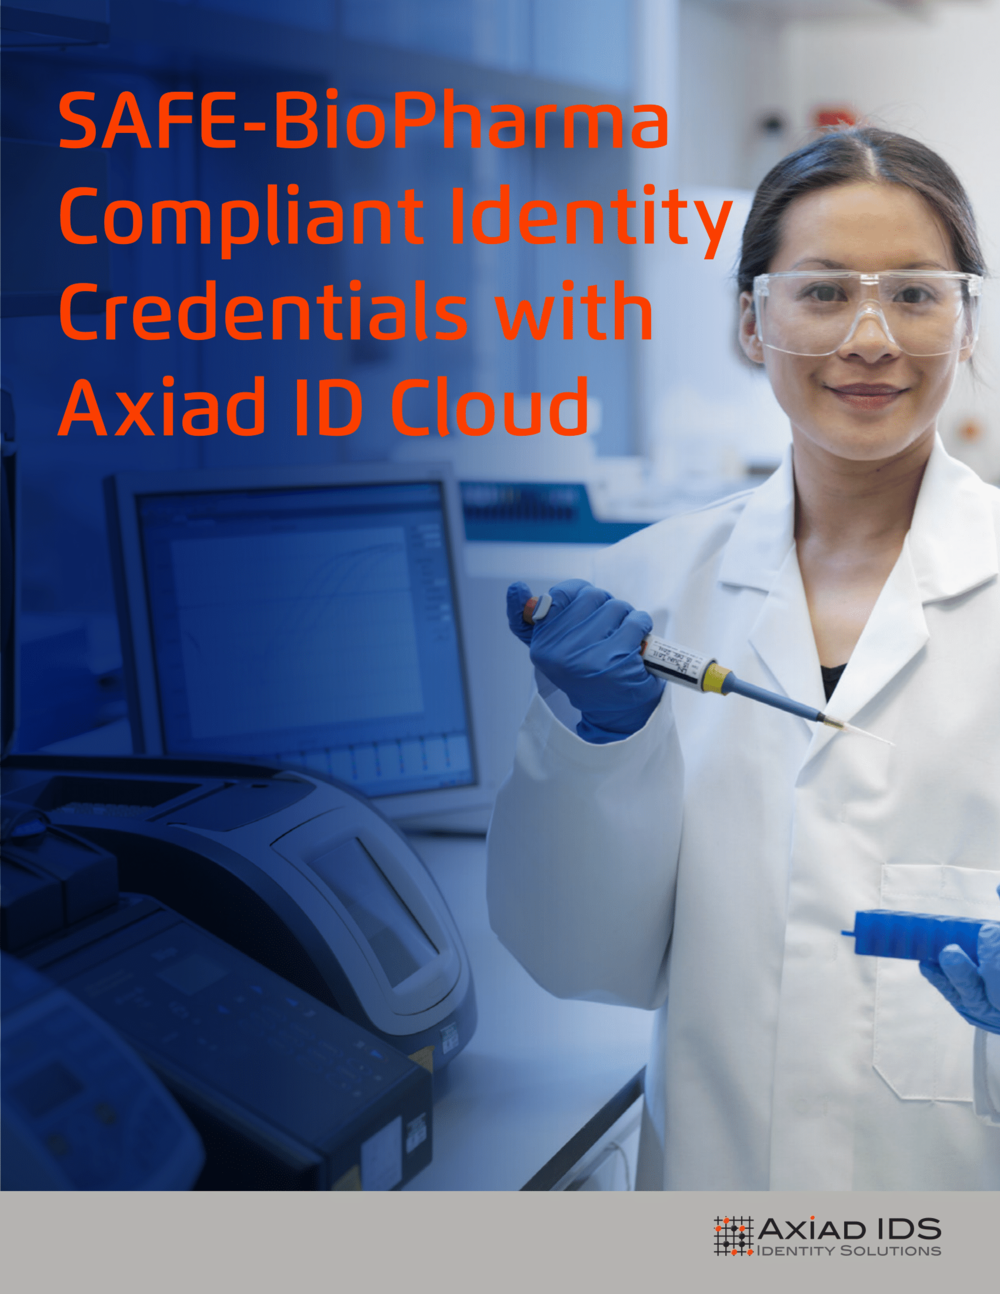 SAFE-BioPharma Compliant Identity Credentials with Axiad ID Cloud